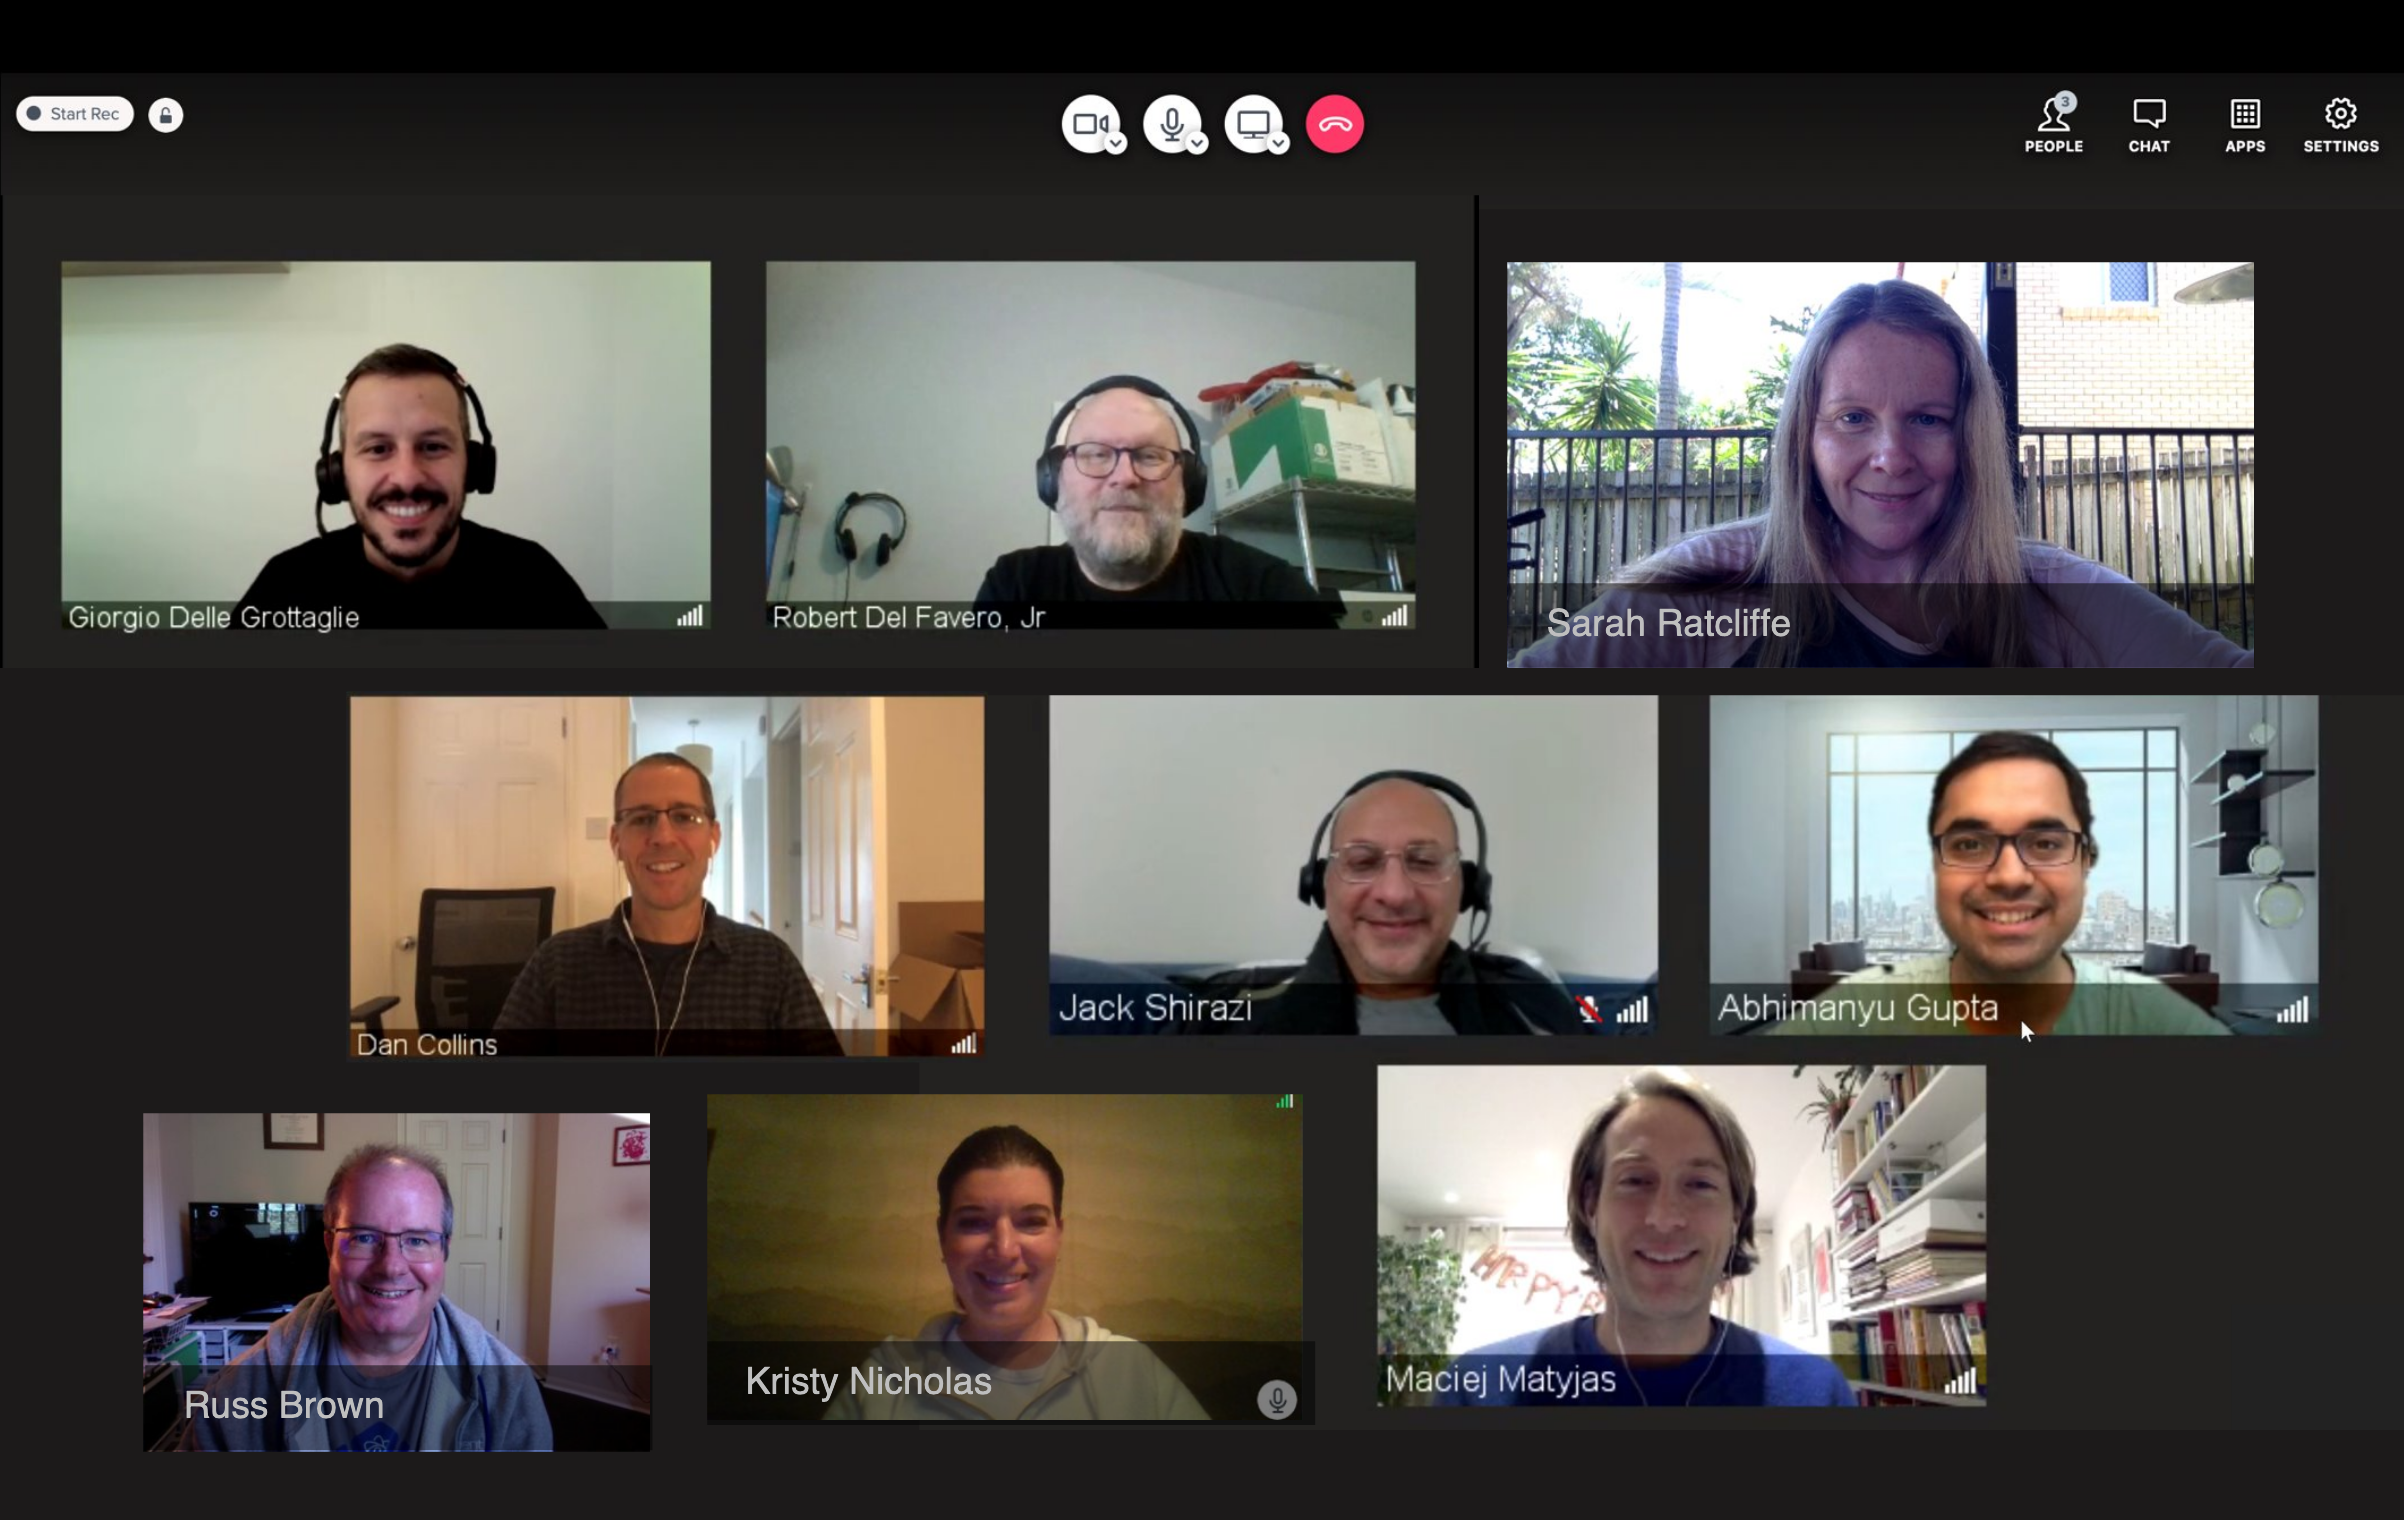 Grid view of editors in a virtual meeting